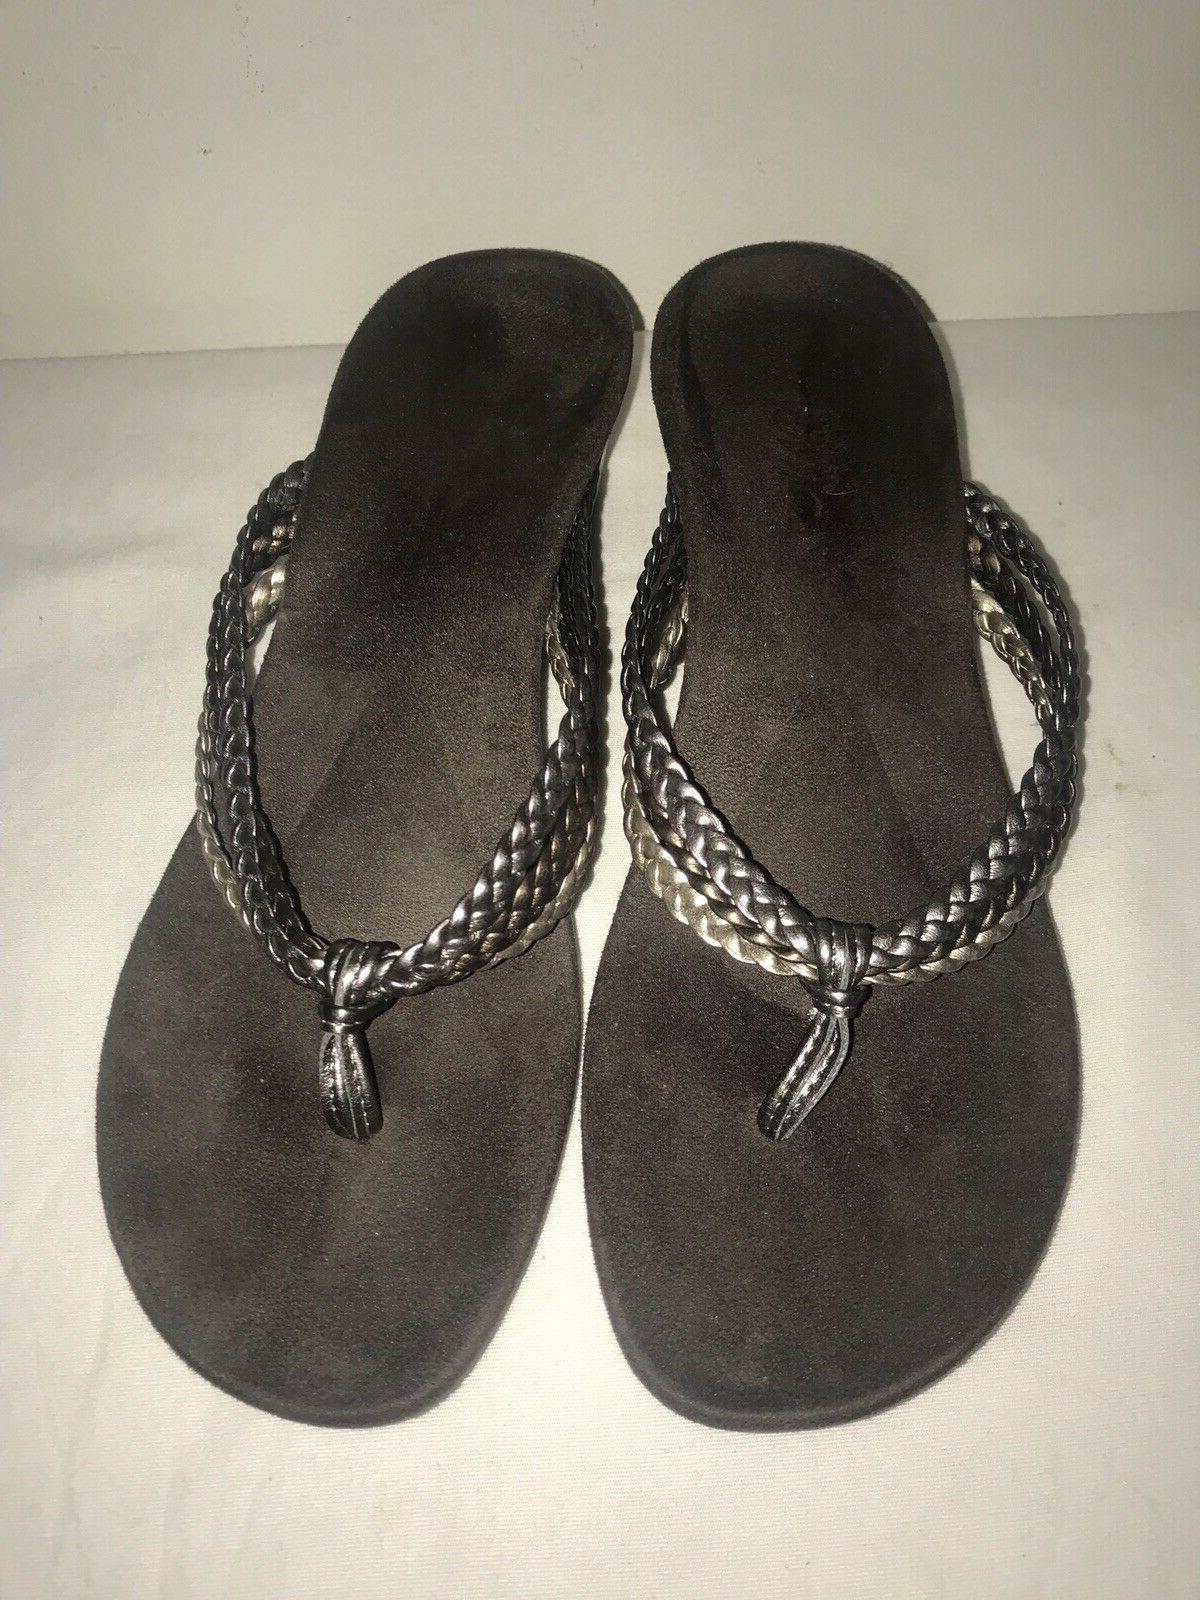 NEW VIONIC Braided Leather Wedge Thong Size 9 M